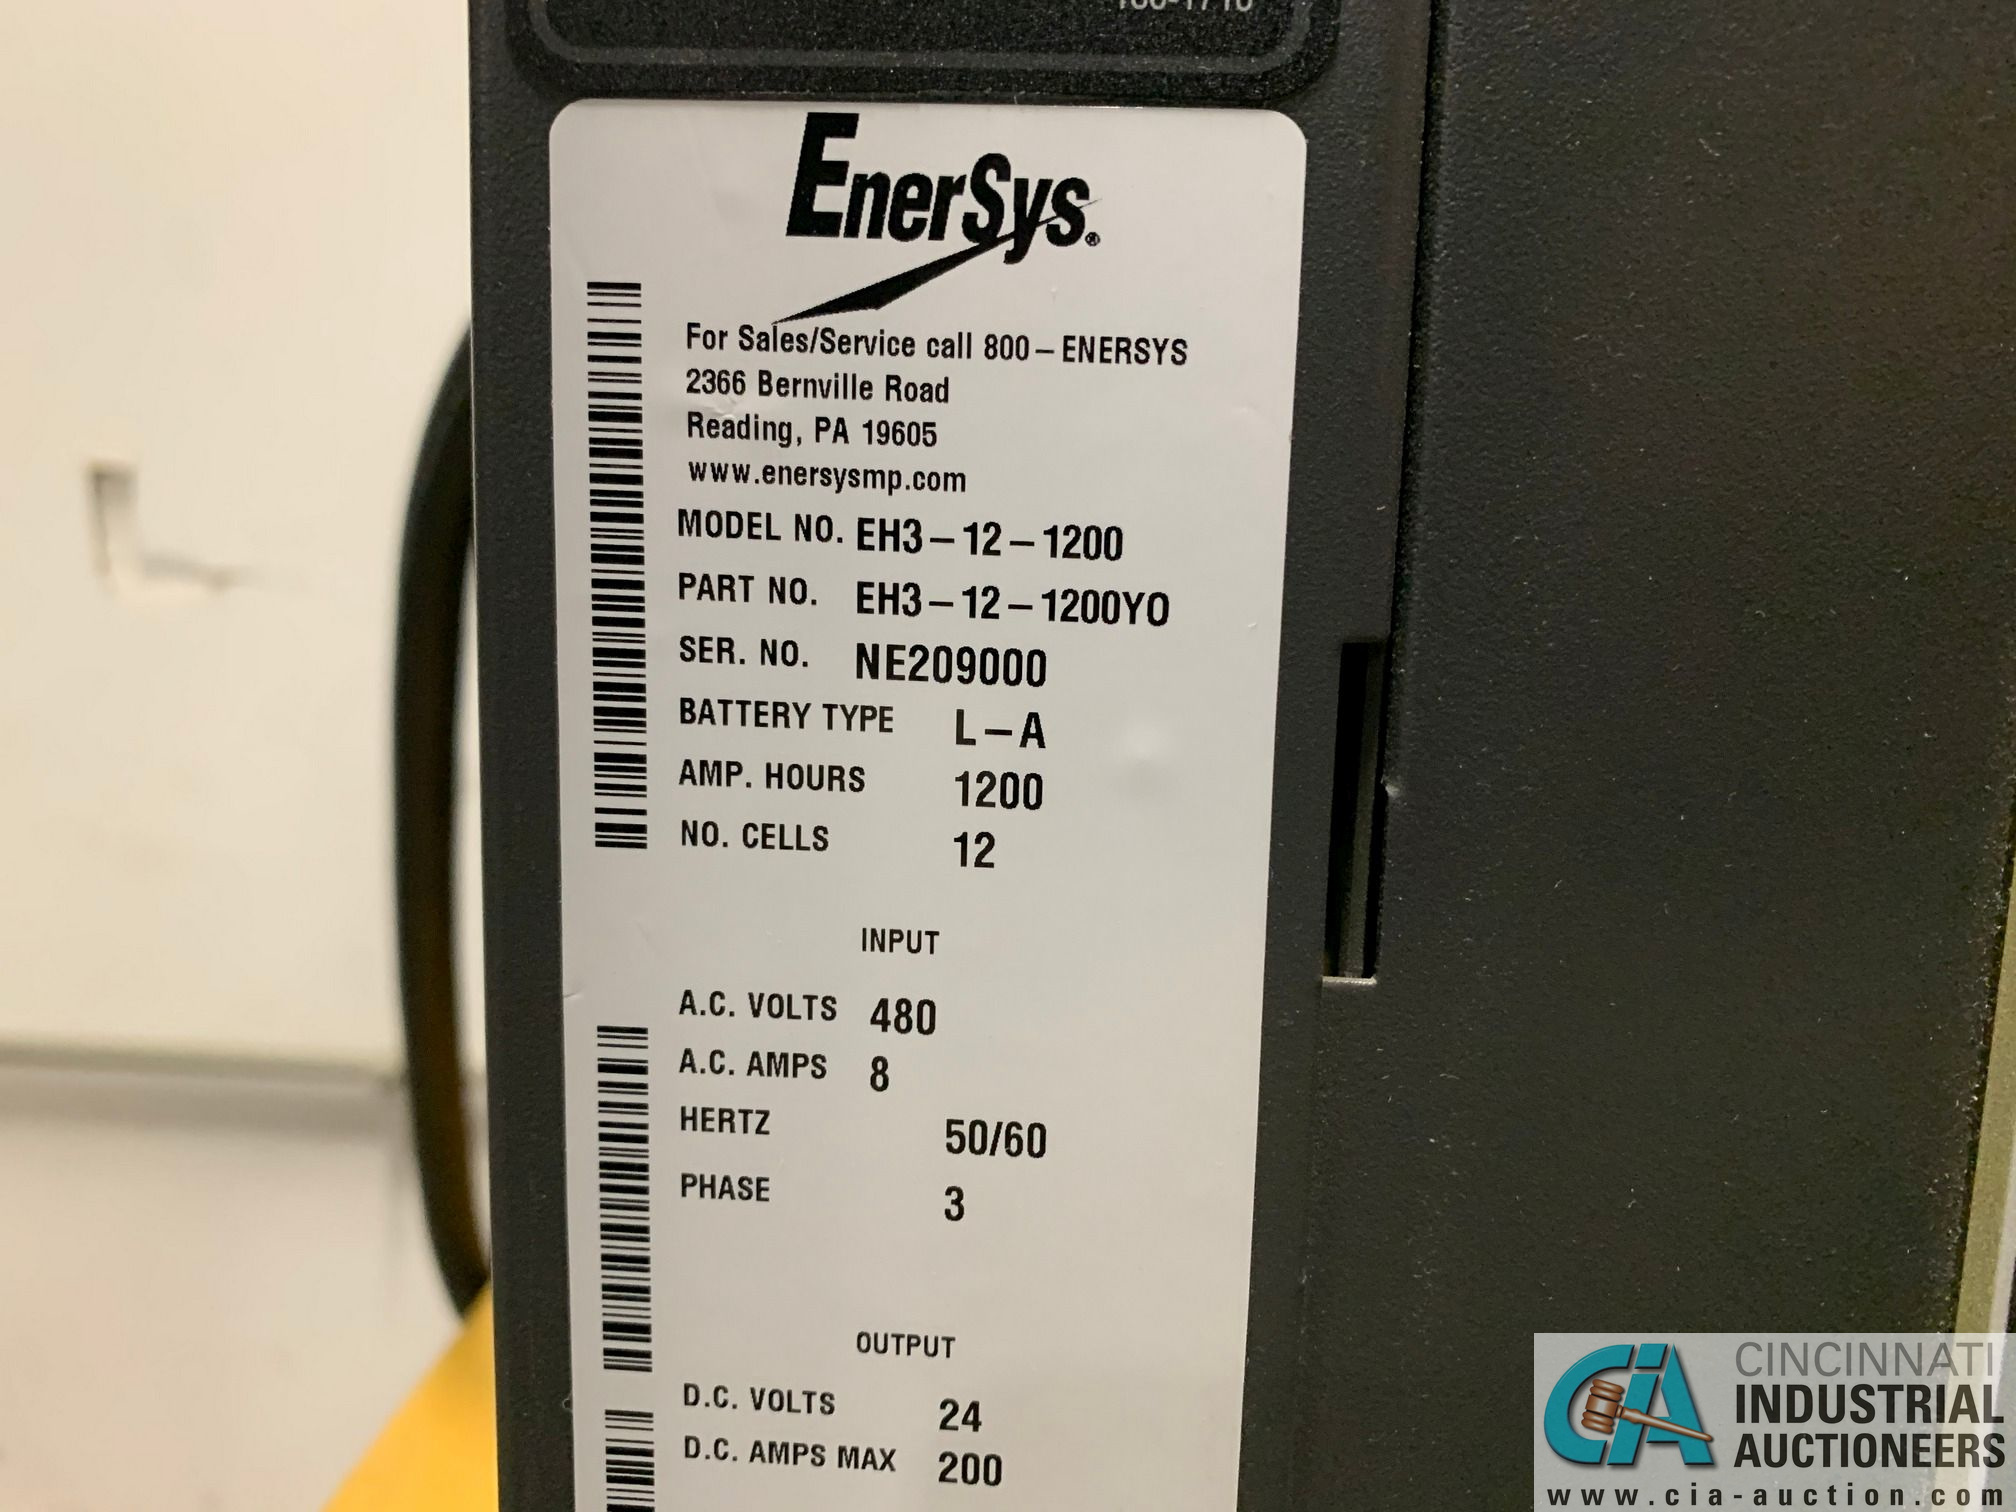 ENERSYS MODEL EH3-12-1200 ENFORCER HF BATTERY CHARGER WITH STAND **LOCATED BY START OF SALE** - Image 2 of 4